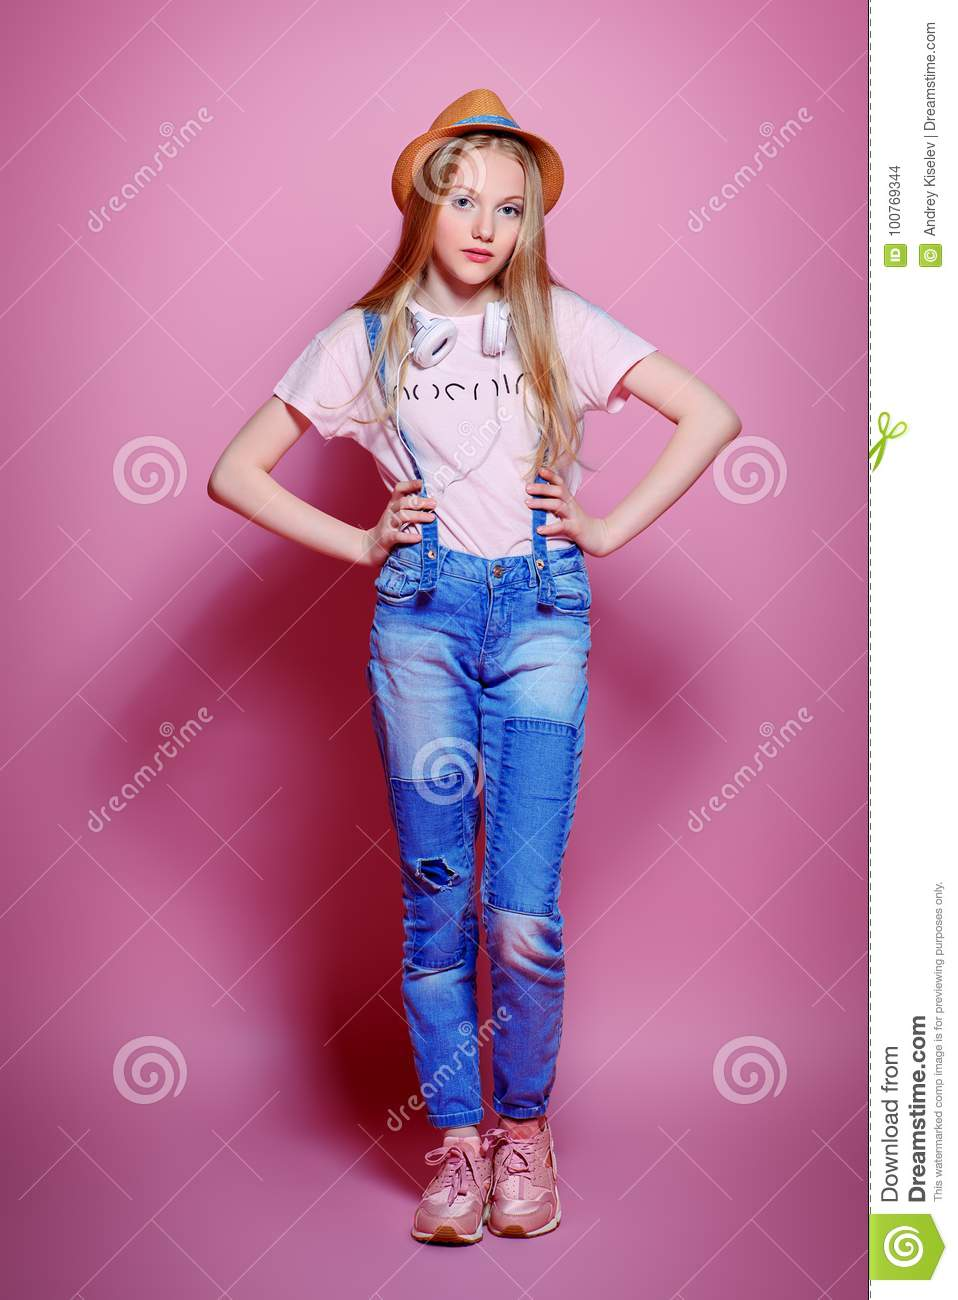 Style For Girls Stock Photo Image Of Background Adolescent 100769344